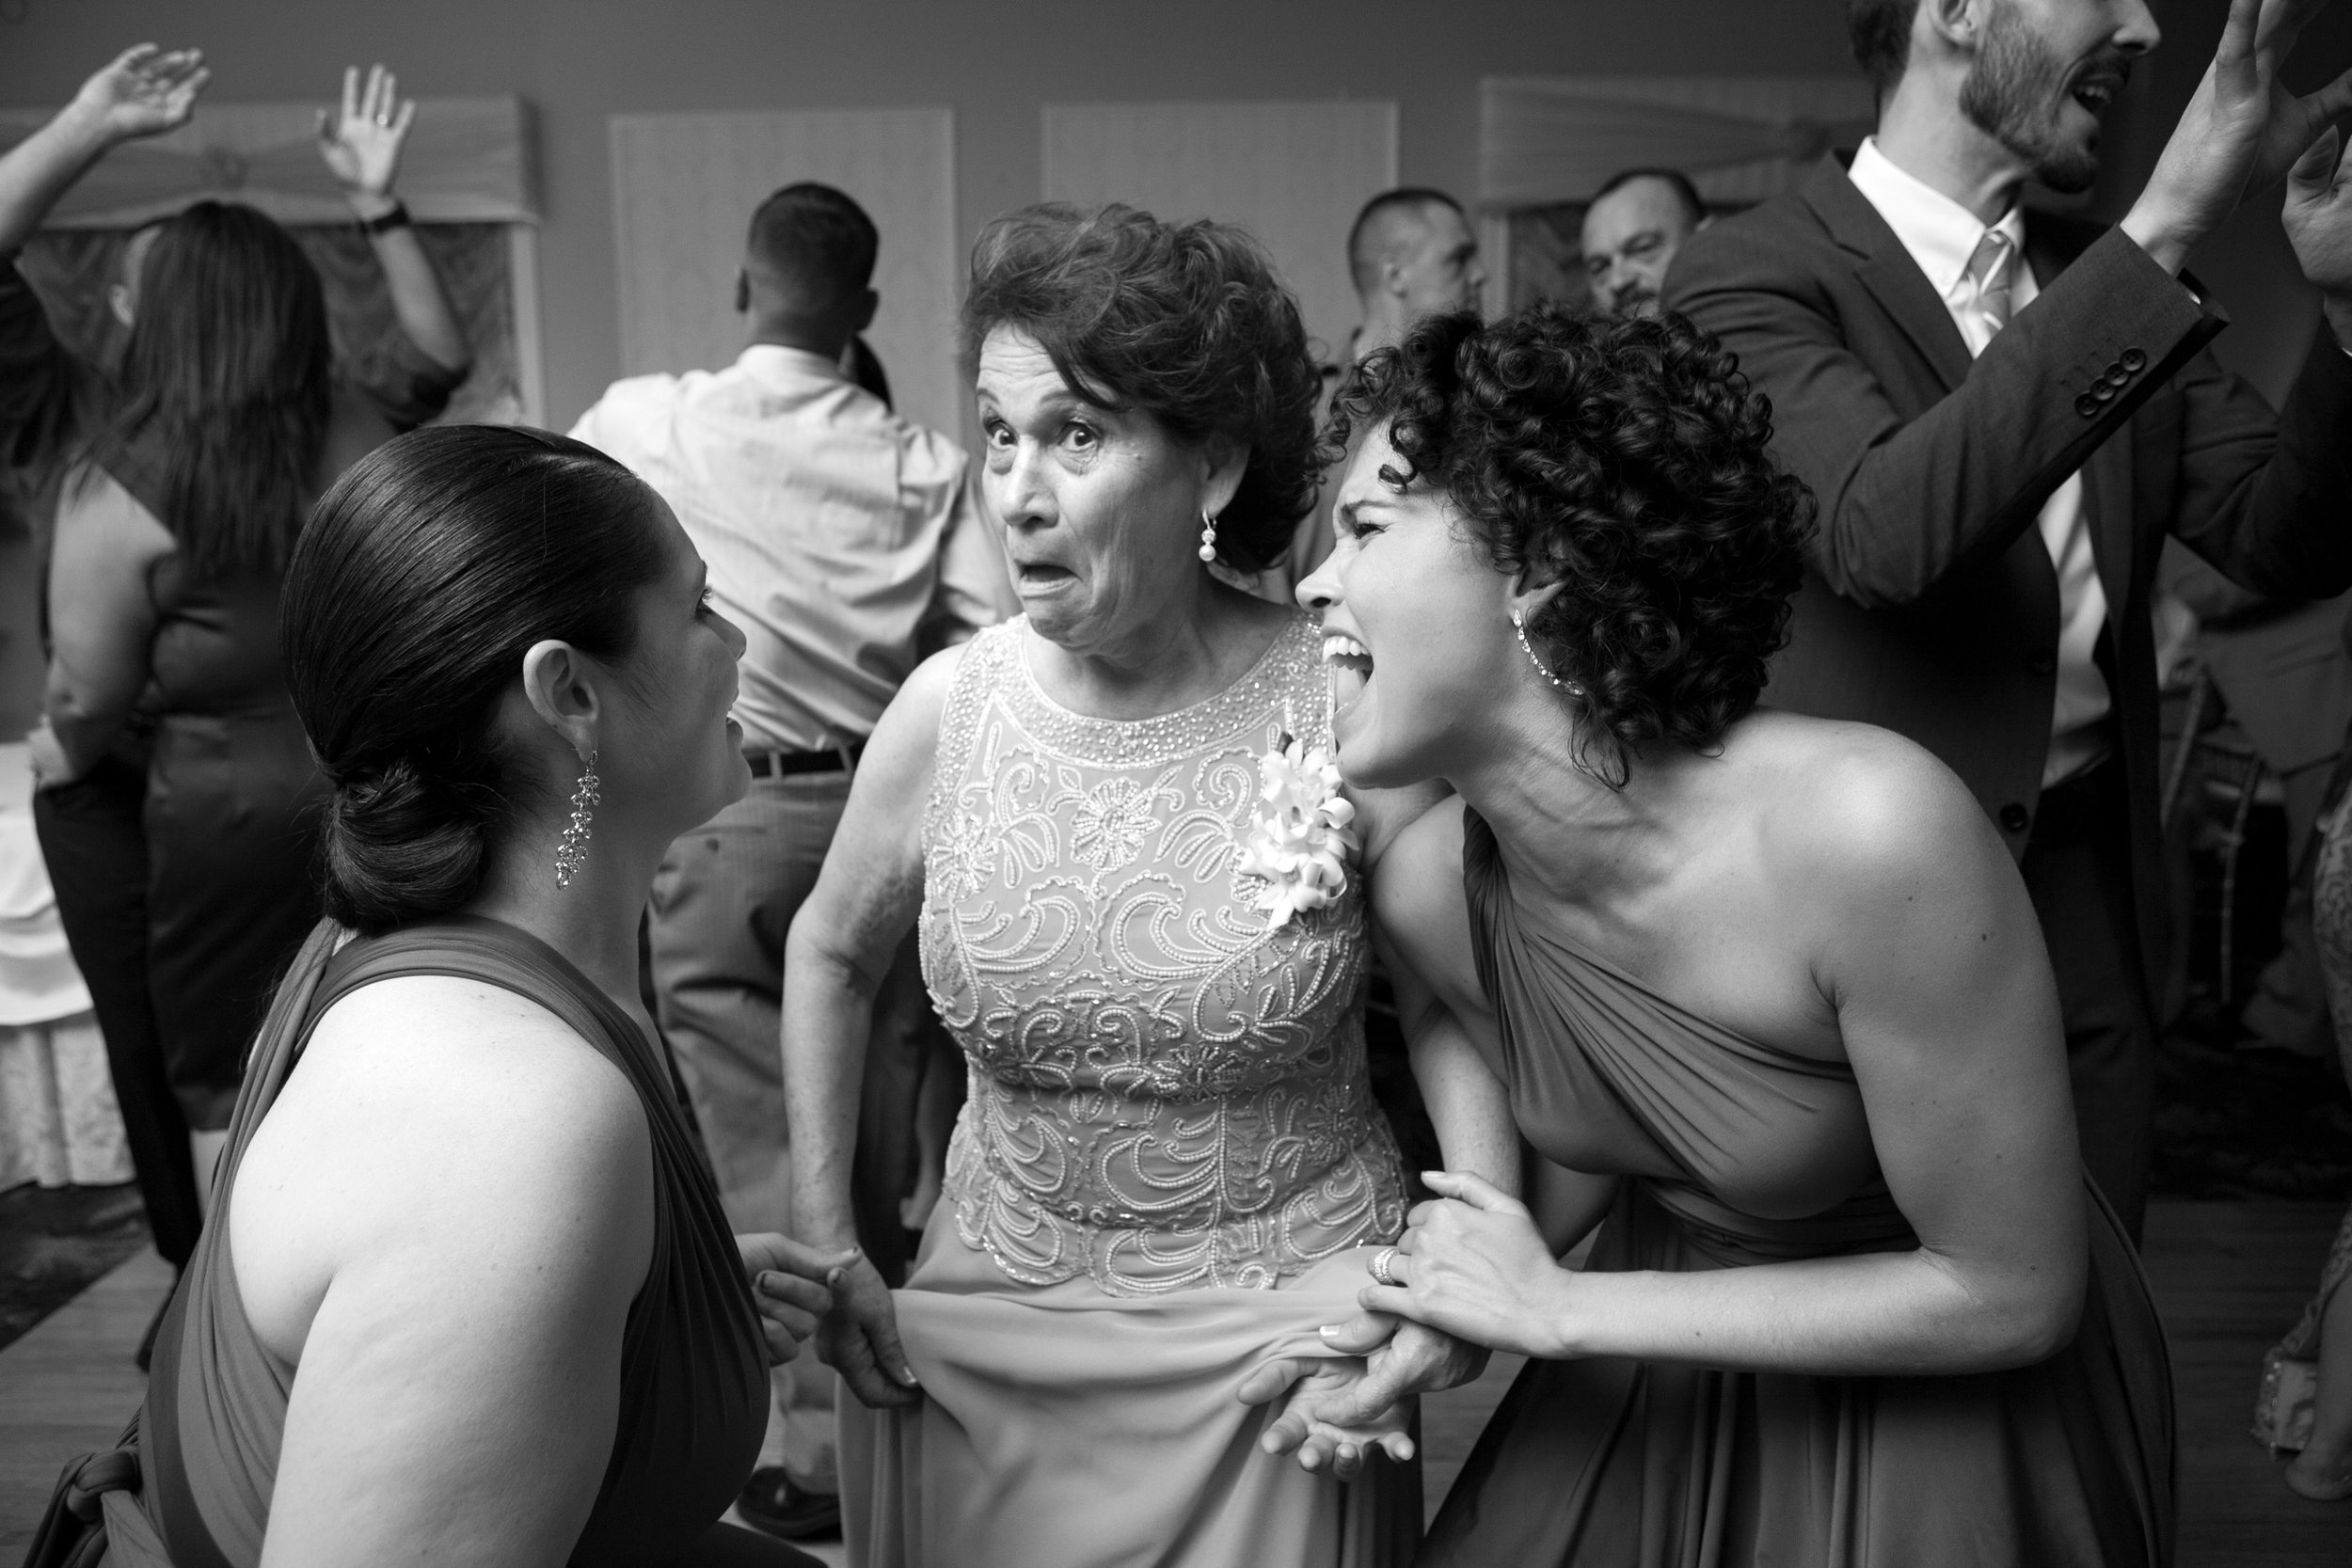 - Dancing the night away at my little sister's wedding.